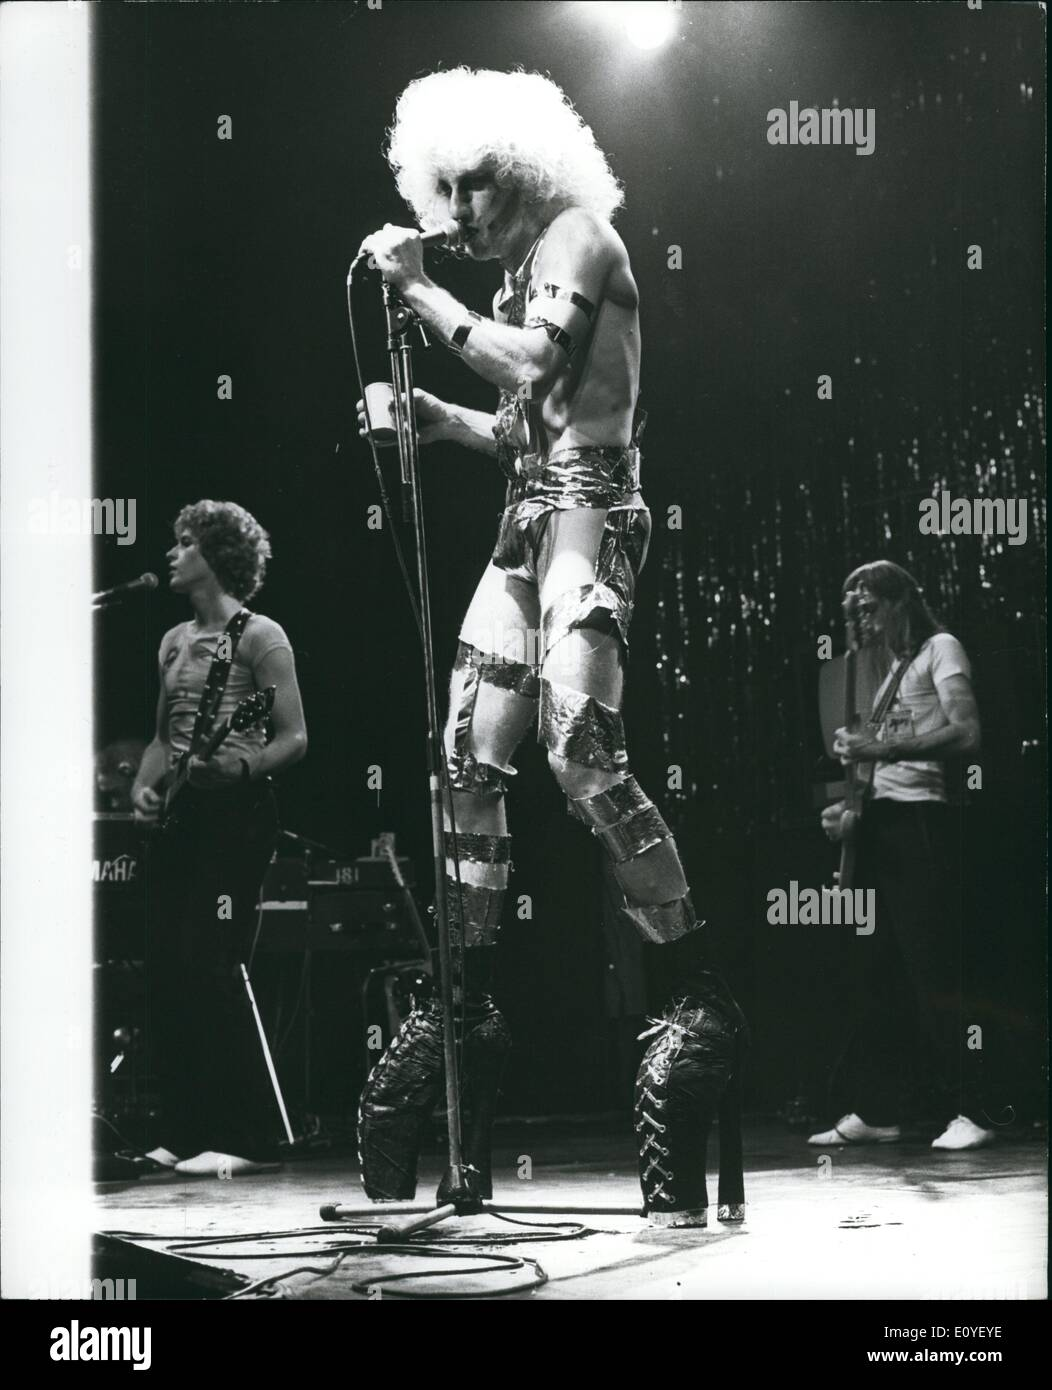 Jan. 1, 1970 - American Rock Band ''Tubes'' in concert at Hammersmith Odeon : ''Tubes'', second to none in the New Wave sounds, - Stock Image